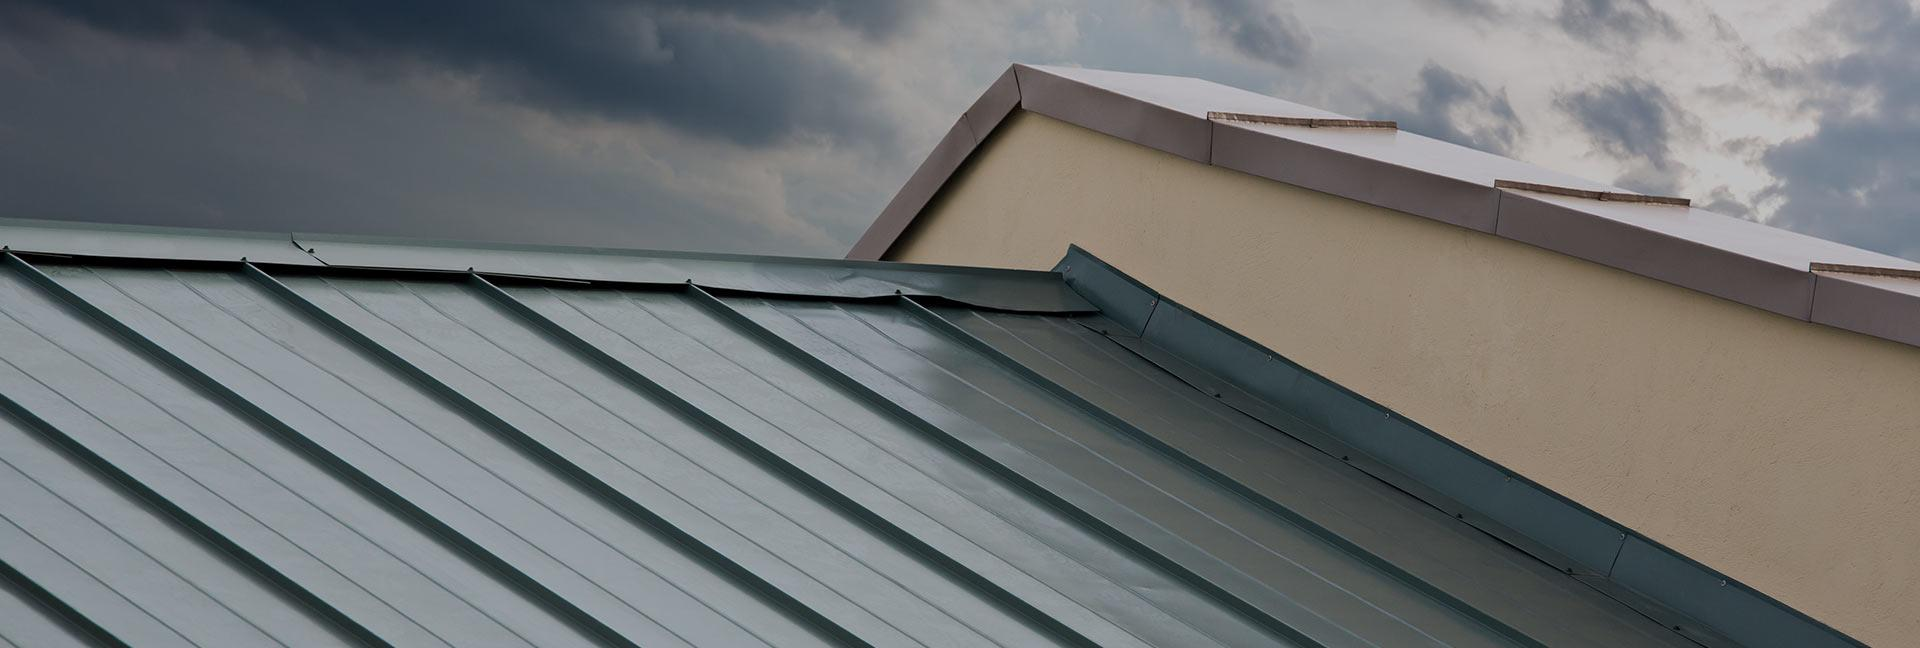 Hail DamageRoofRepair, MetalRoofing, and NewRoofforArlington, TX, Residents for your home